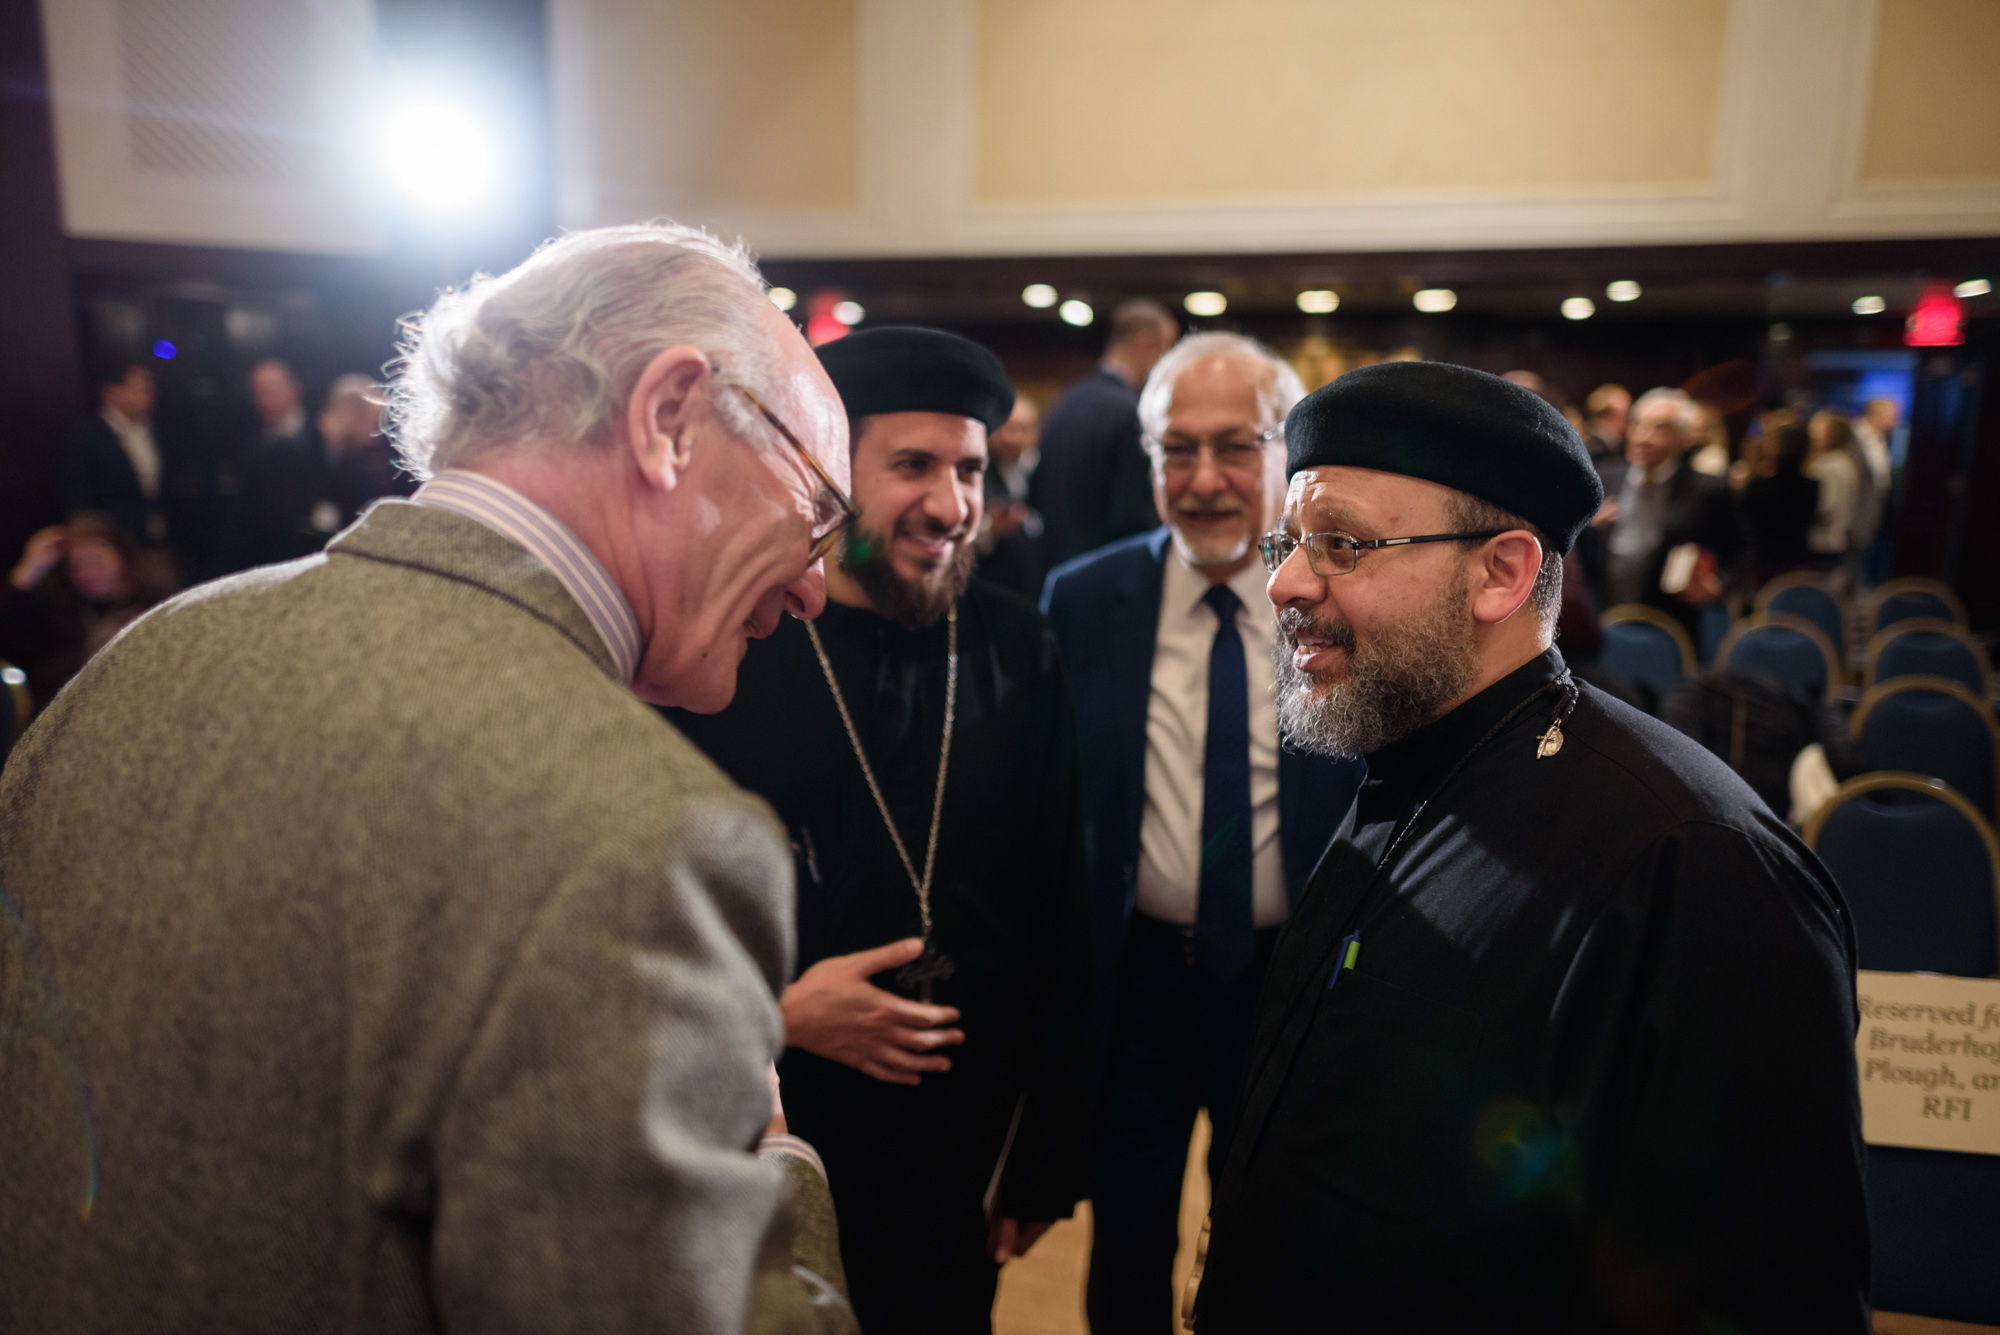 055 - February 12th 2019 Religious Freedom Institute at National Press Club - Photo Nathan Mitchell.jpg